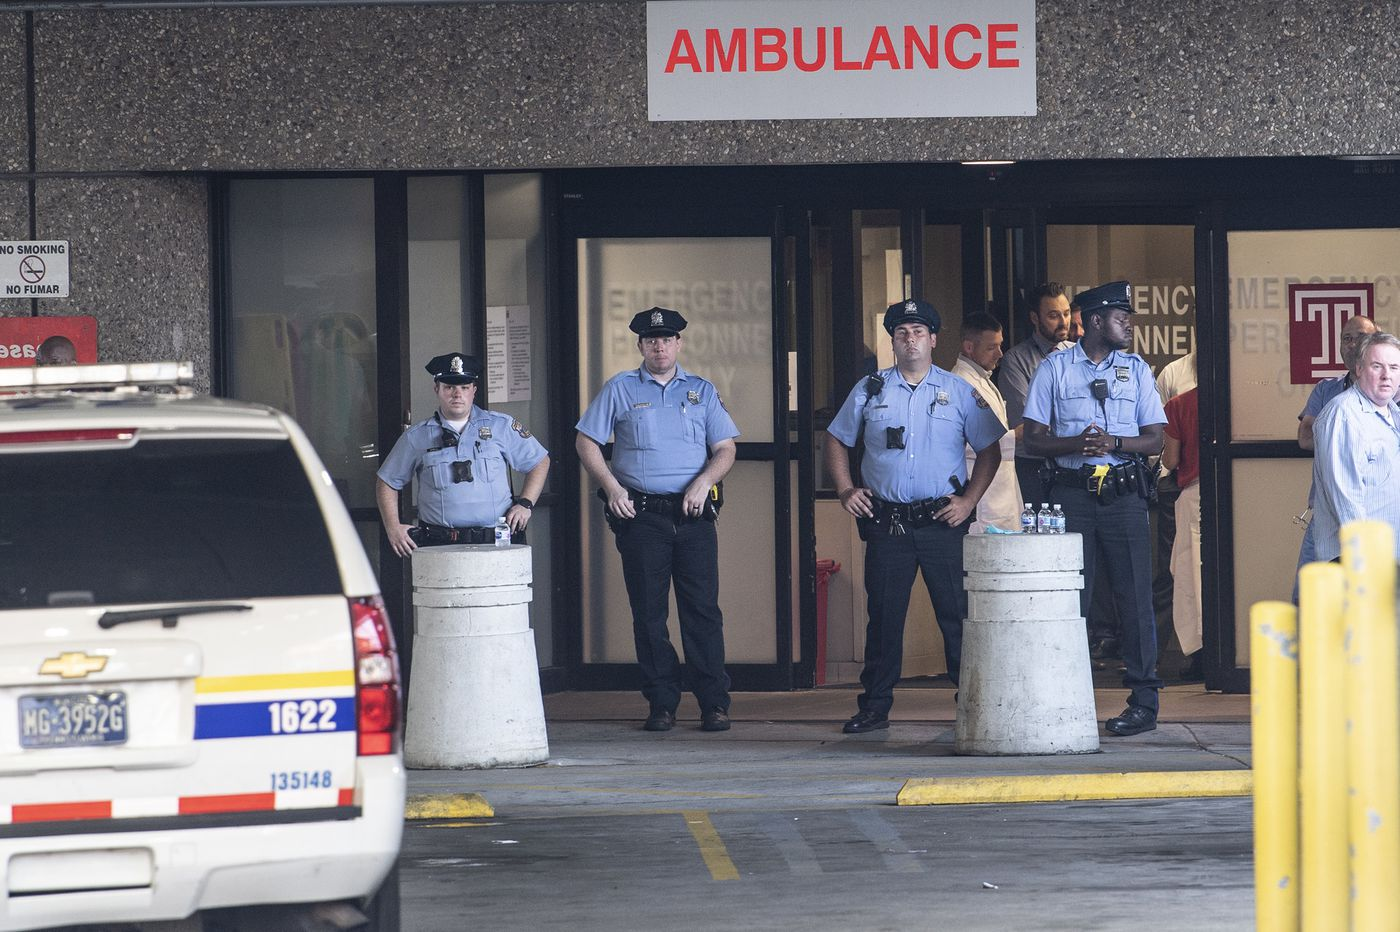 After Philadelphia police shooting, officers raced to Temple Hospital: 'It was intense'